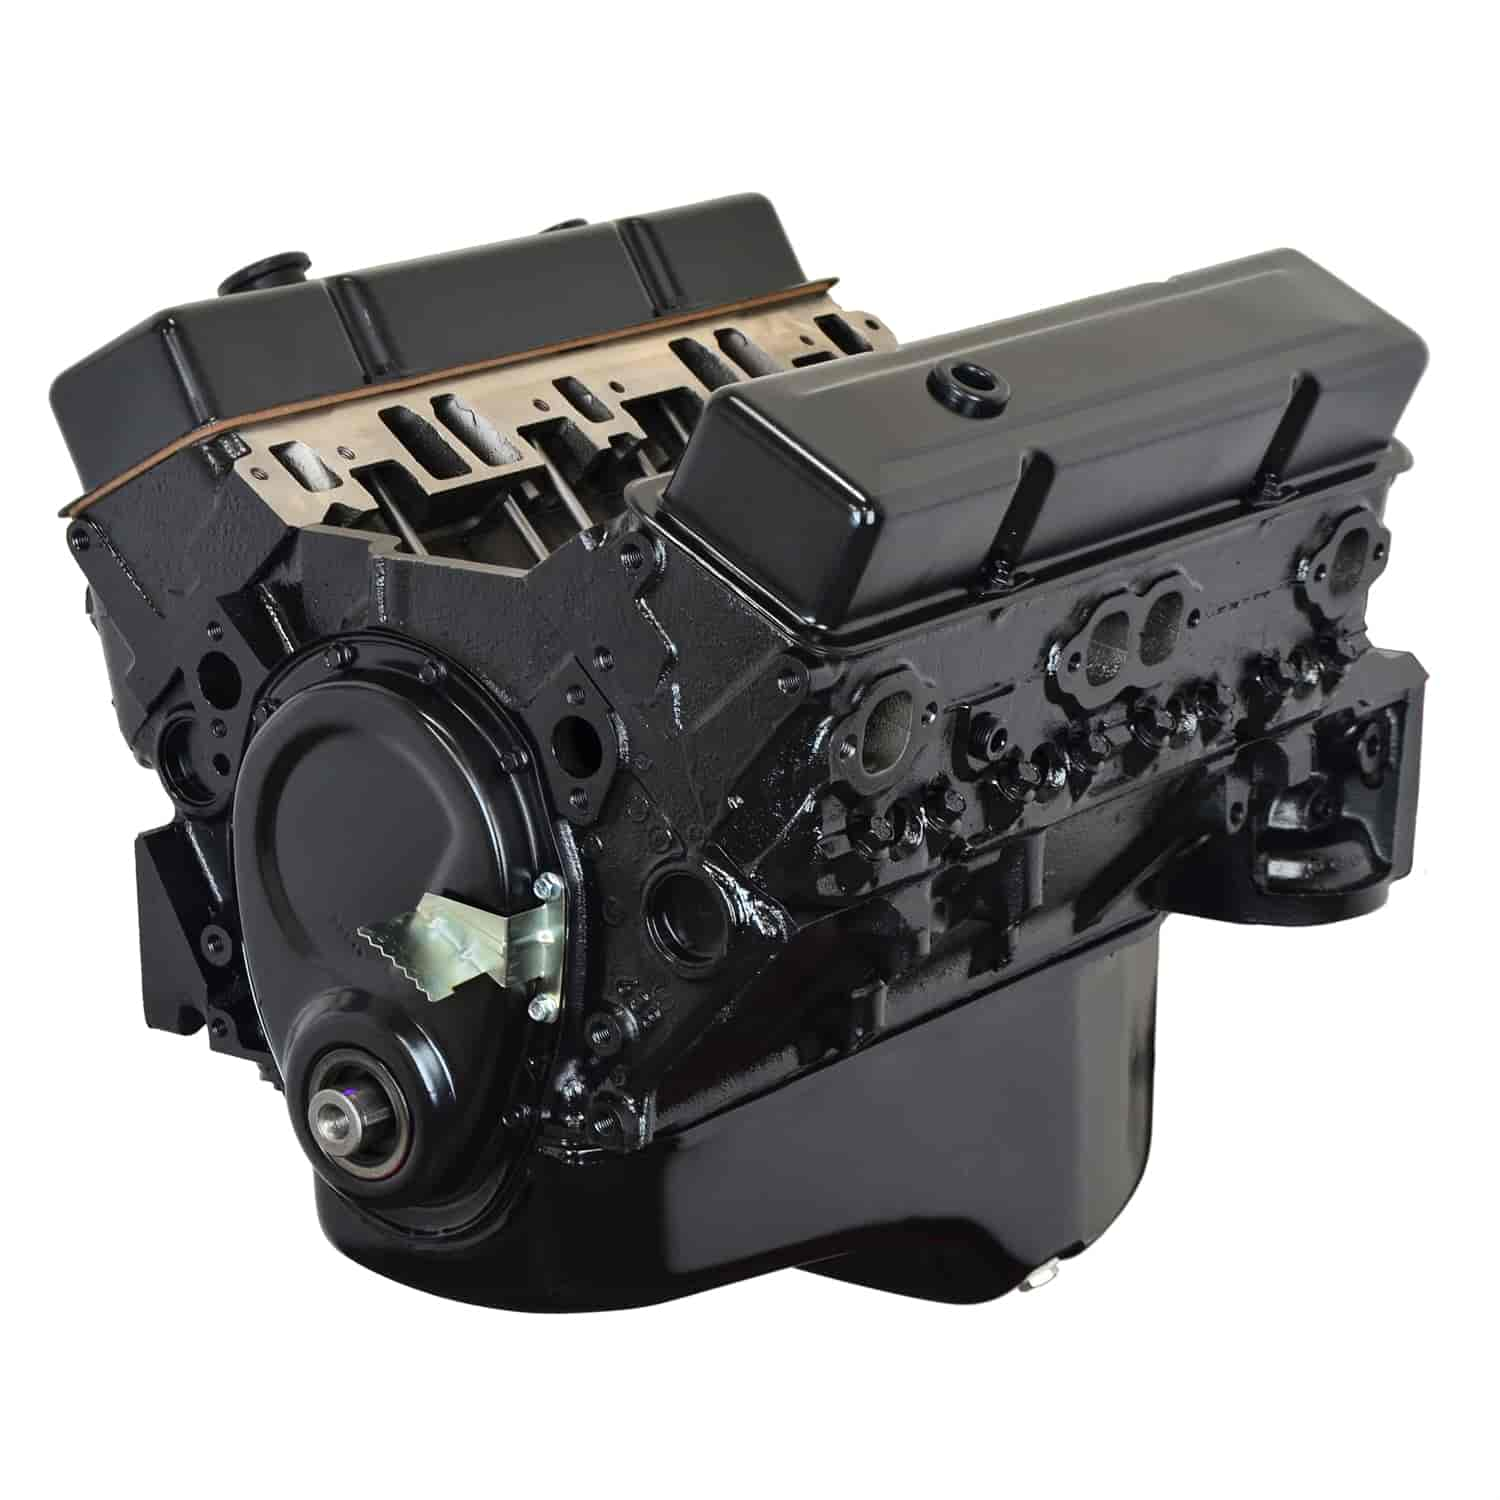 Jegs 3831 Small Block Chevy 383 Ci Performance Crate Engine Jegs